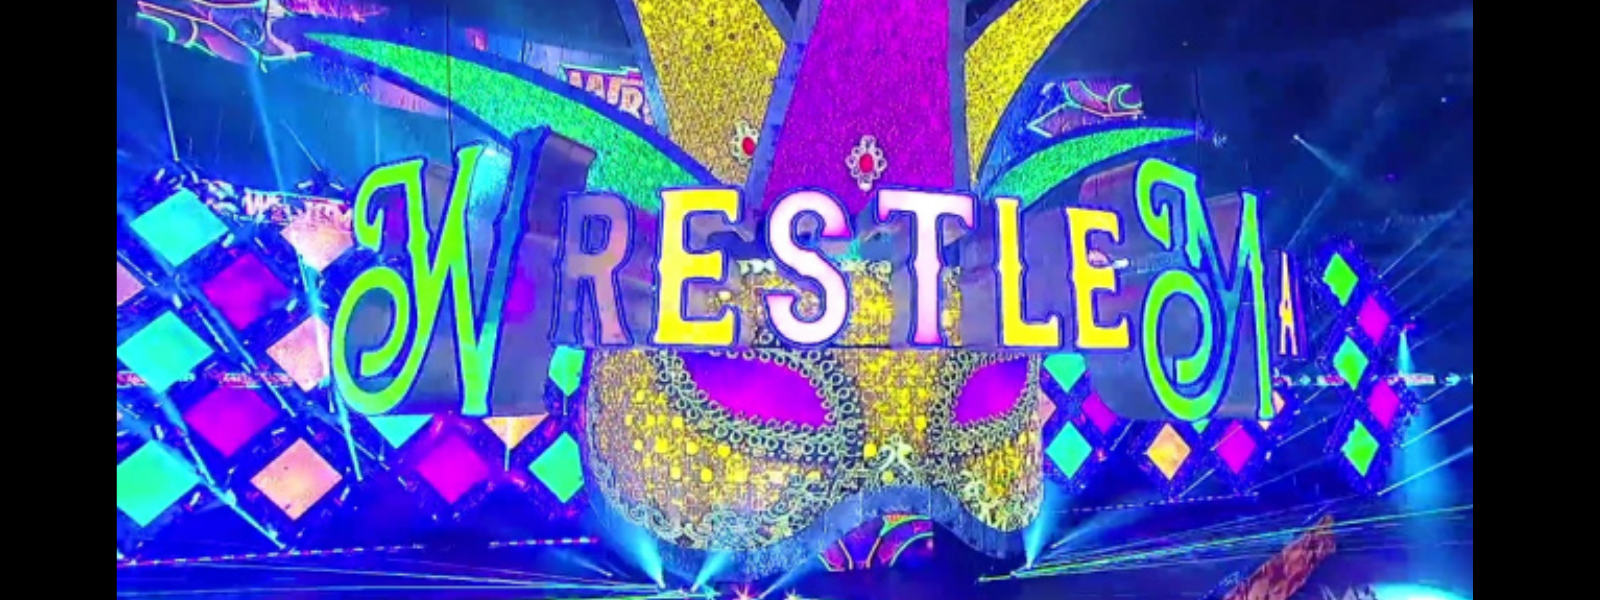 All you need to know about WWE WreslteMania 34